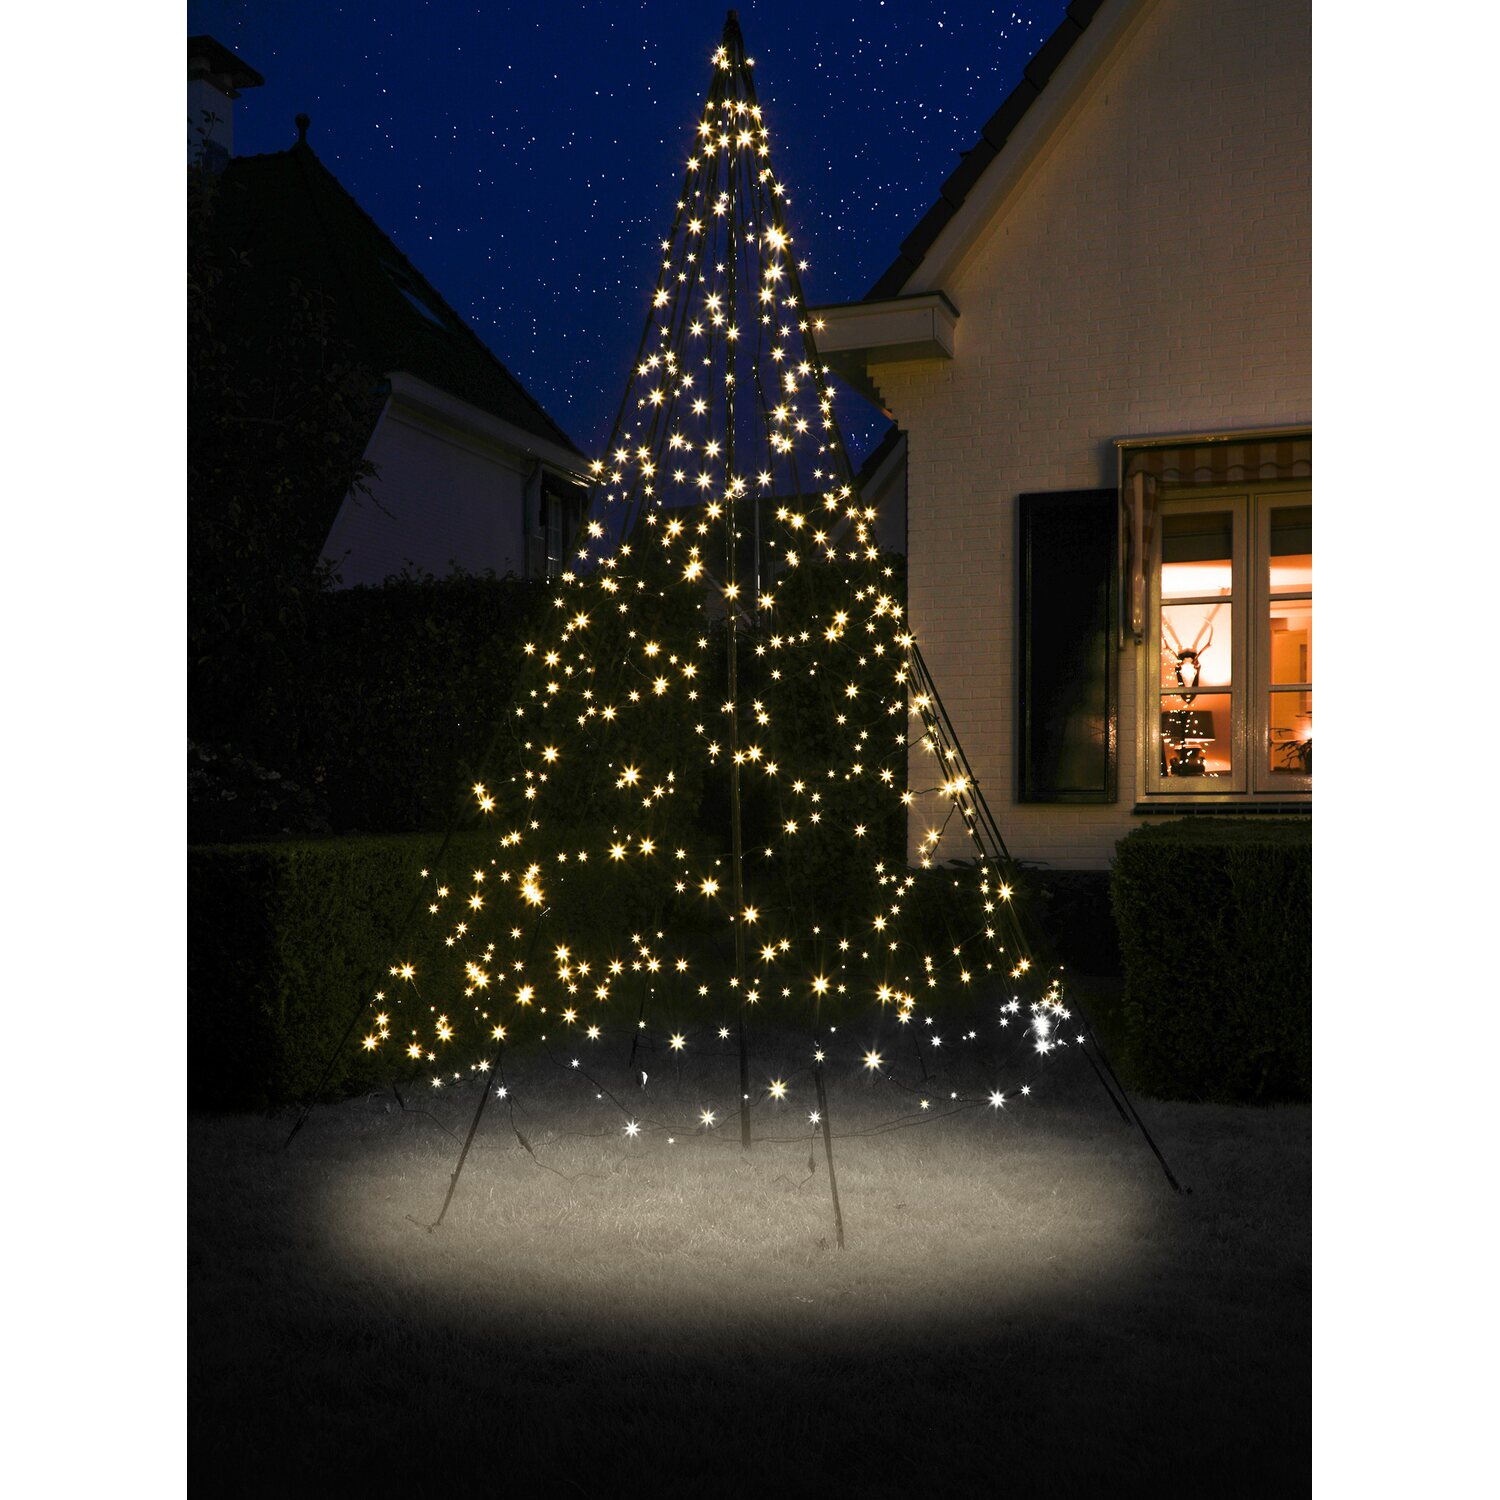 fairybell led weihnachtsbaum 480 warmwei e leds 300 cm au en kaufen bei obi. Black Bedroom Furniture Sets. Home Design Ideas